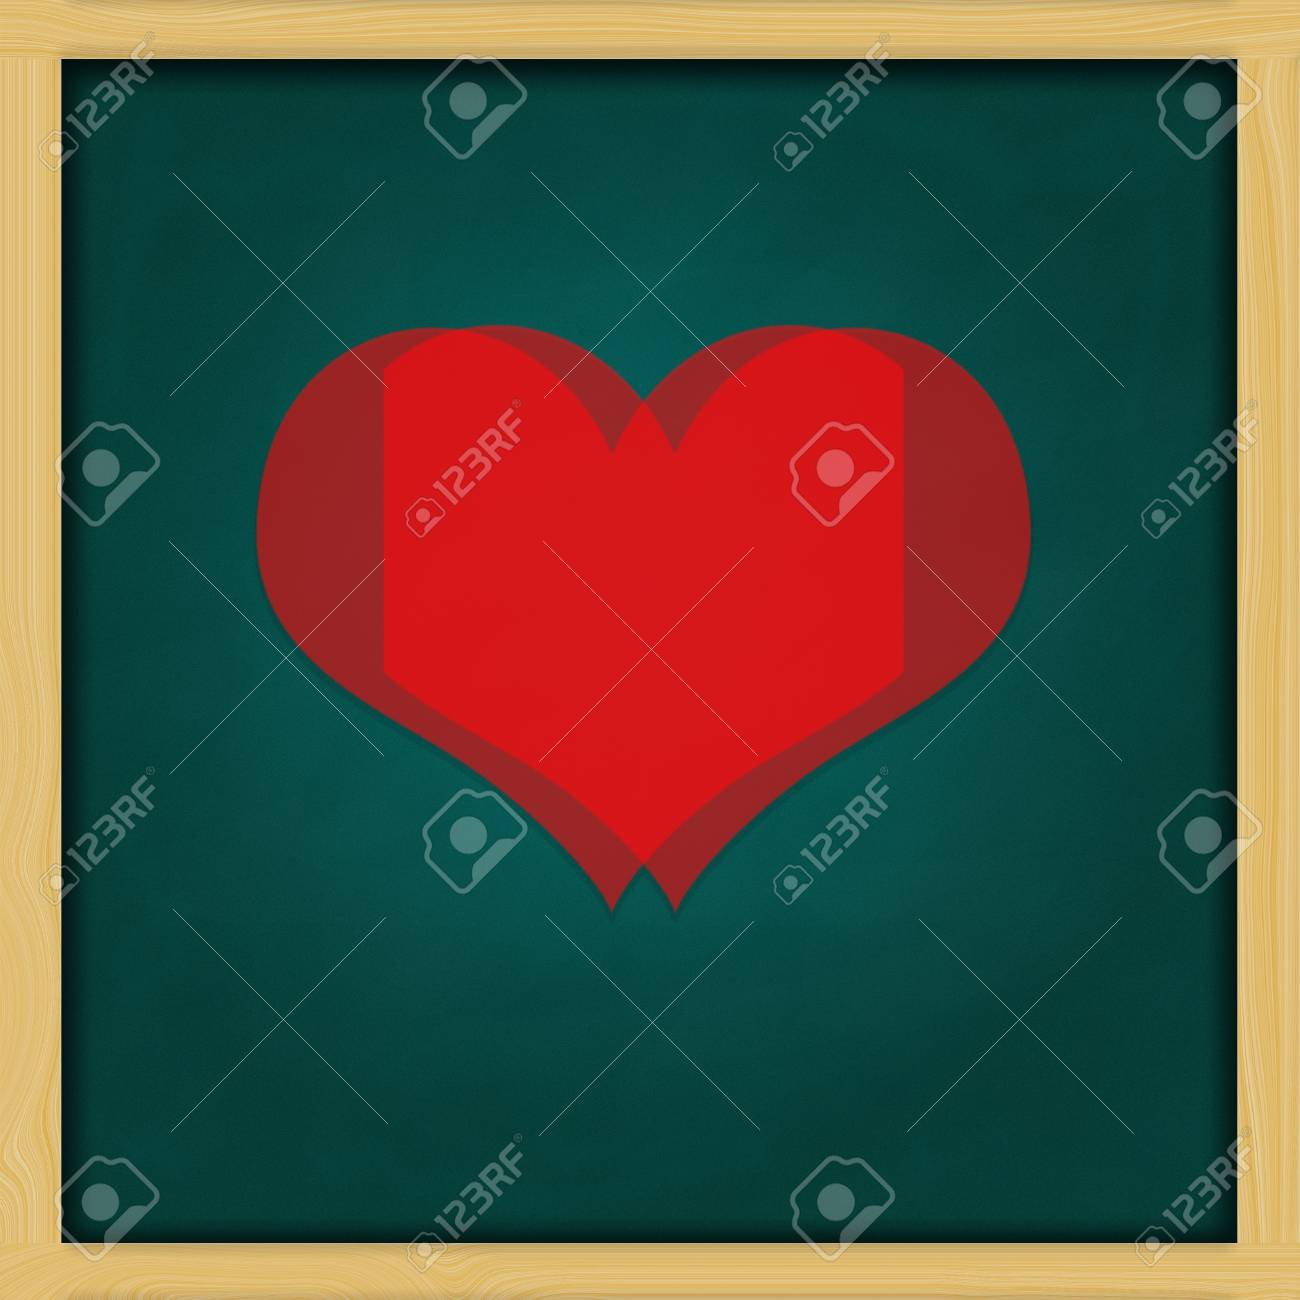 Love Background and green chalkboard frame   conceptual Stock Photo - 13964439